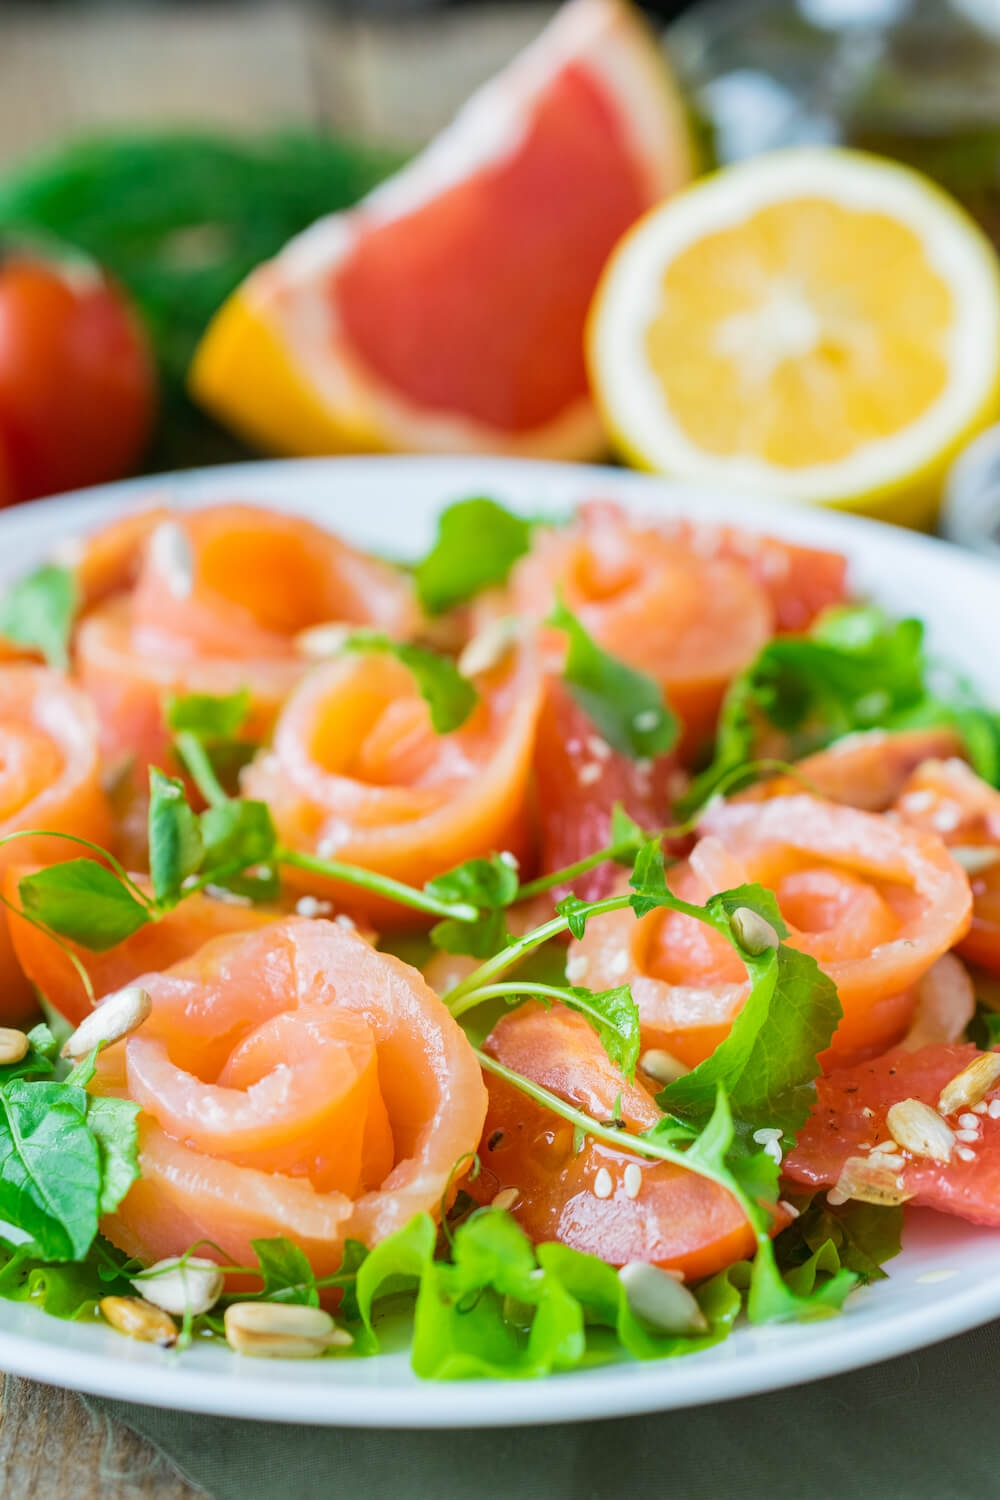 Salmon Salad with Grapefruit and Tomatoes